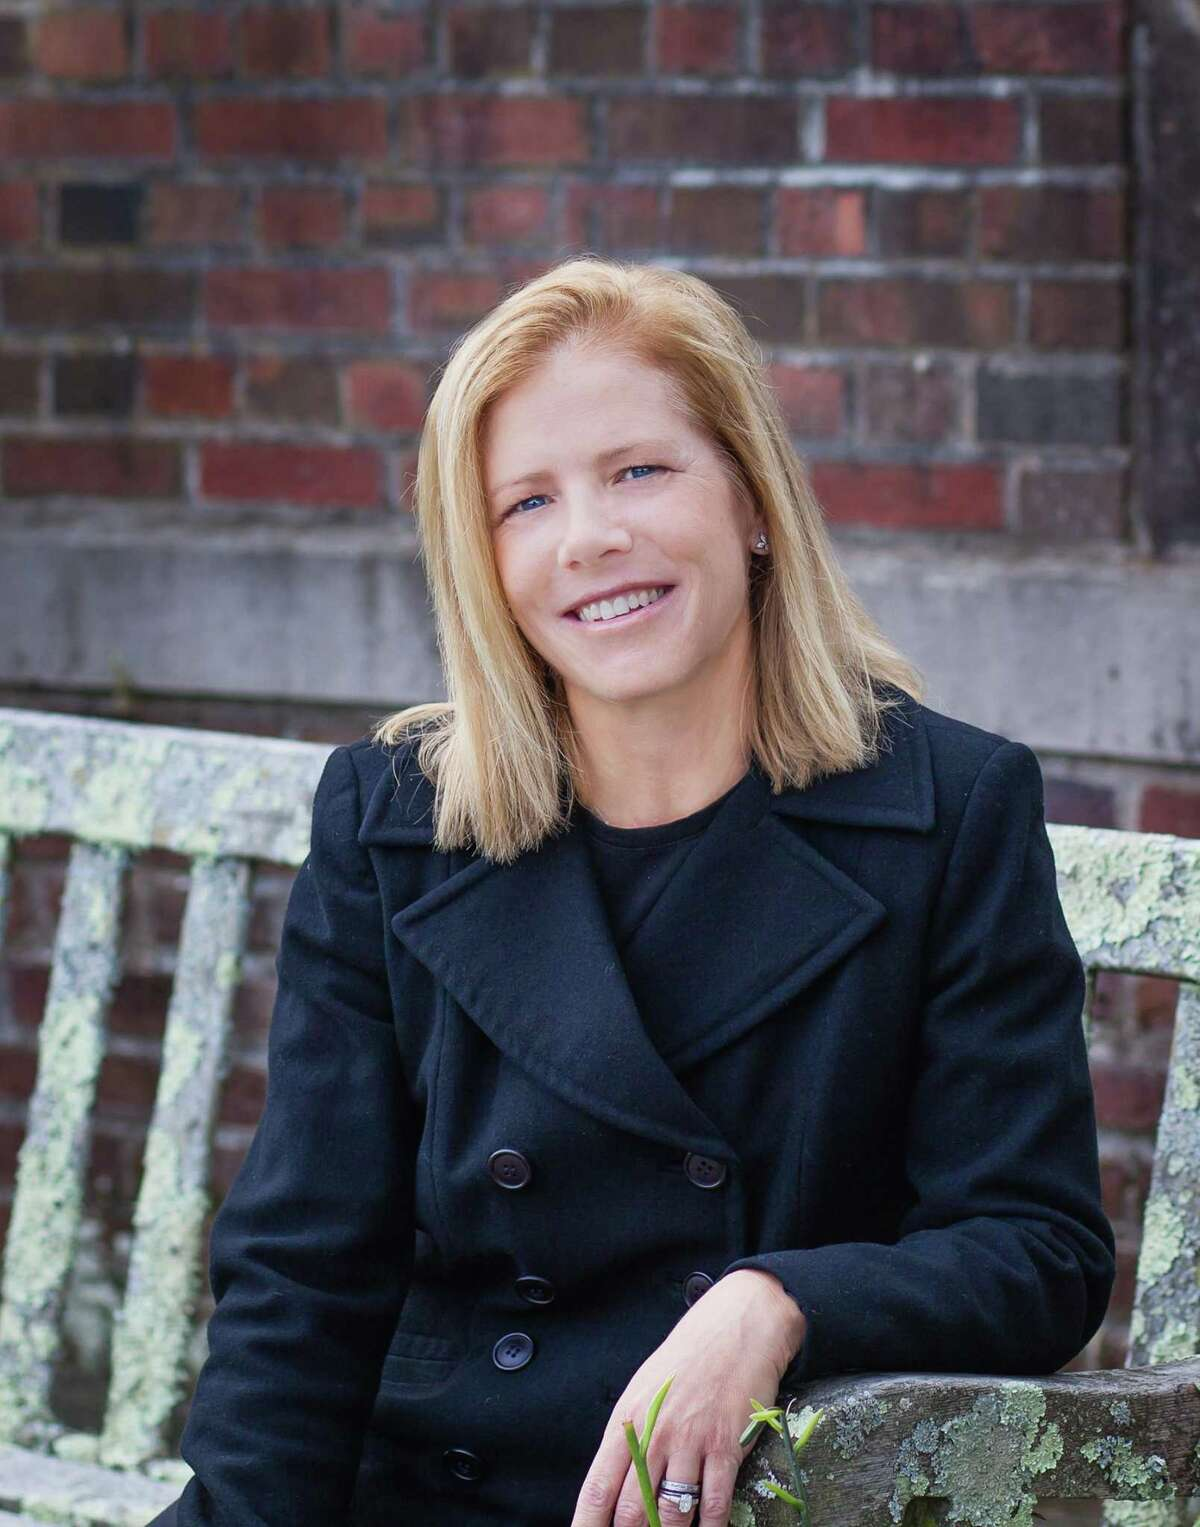 Ann Lineberger, of Wilton, is the author of a new mystery called